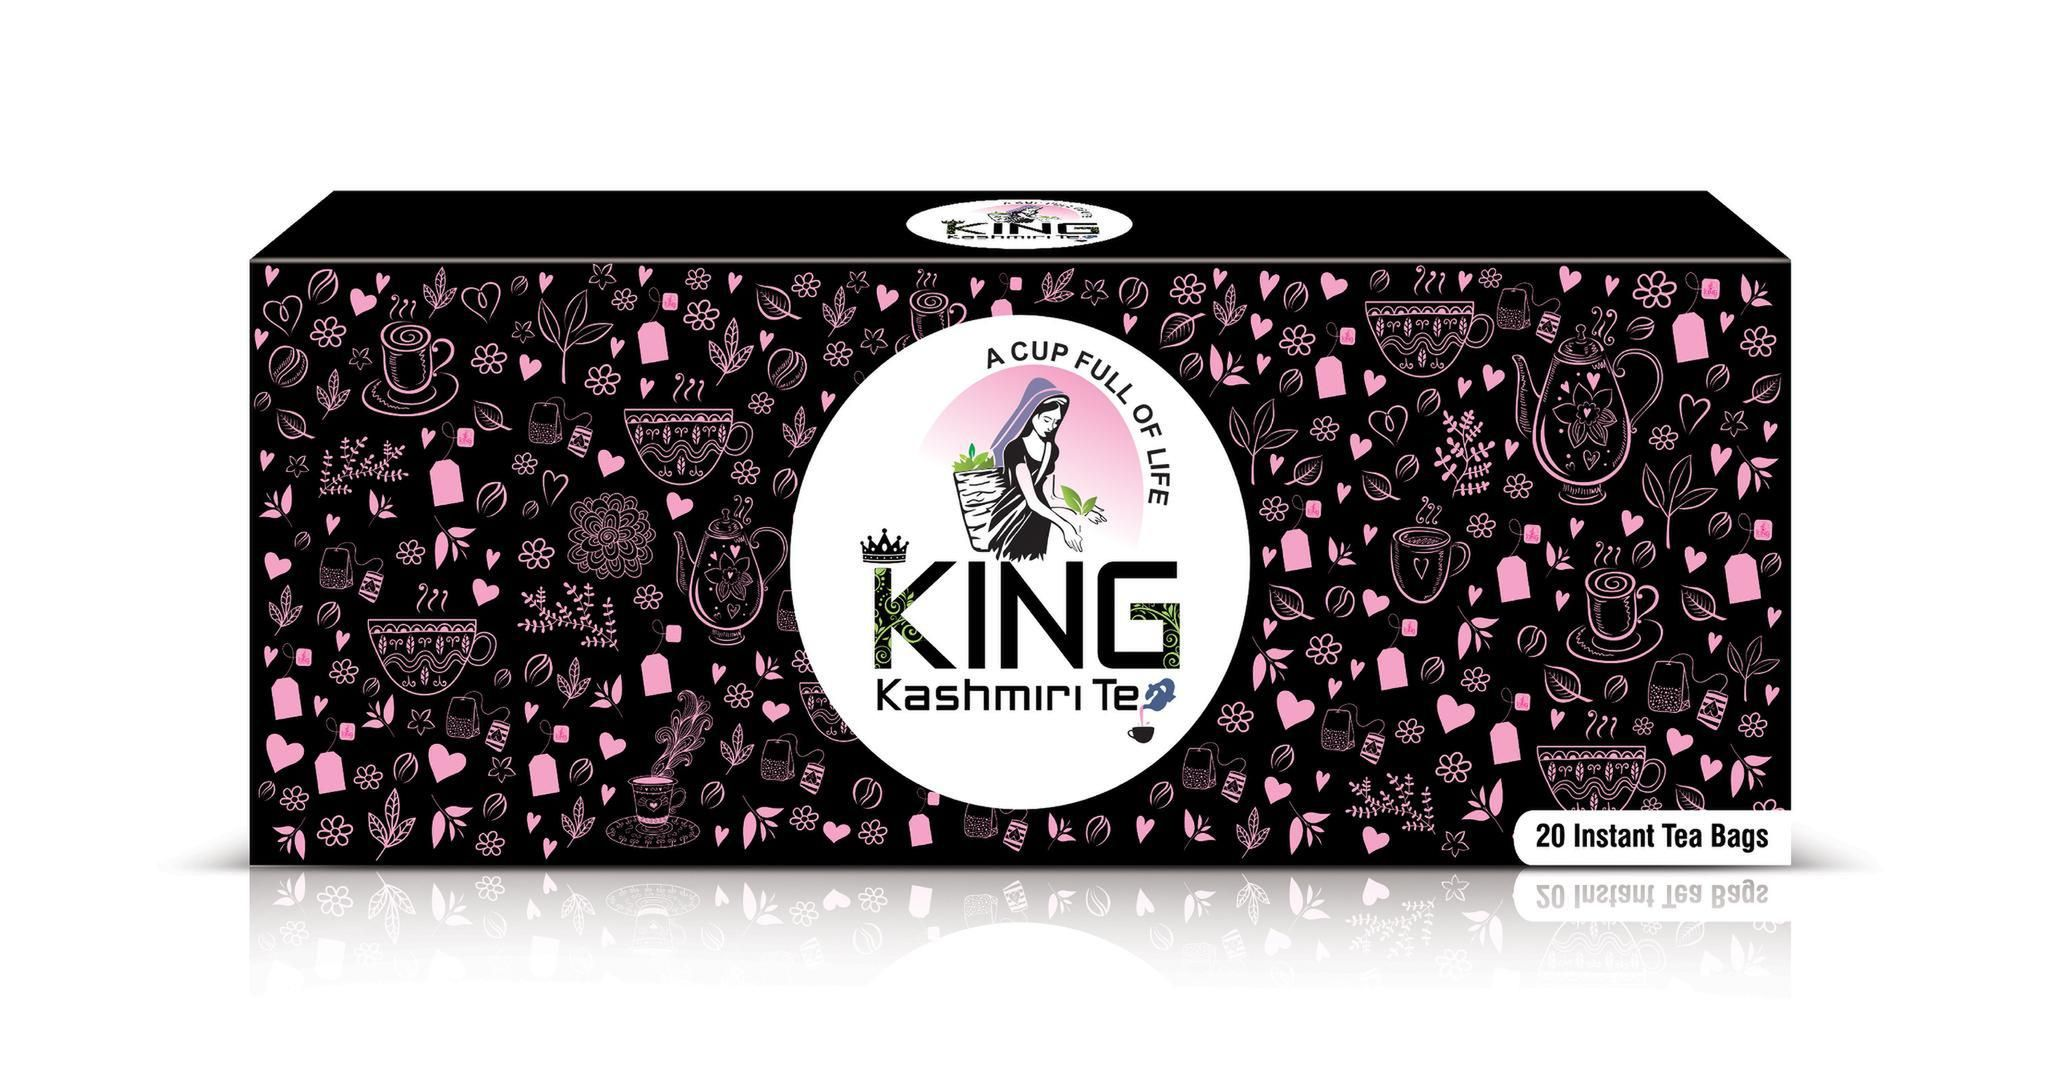 King Kashmiri Tea